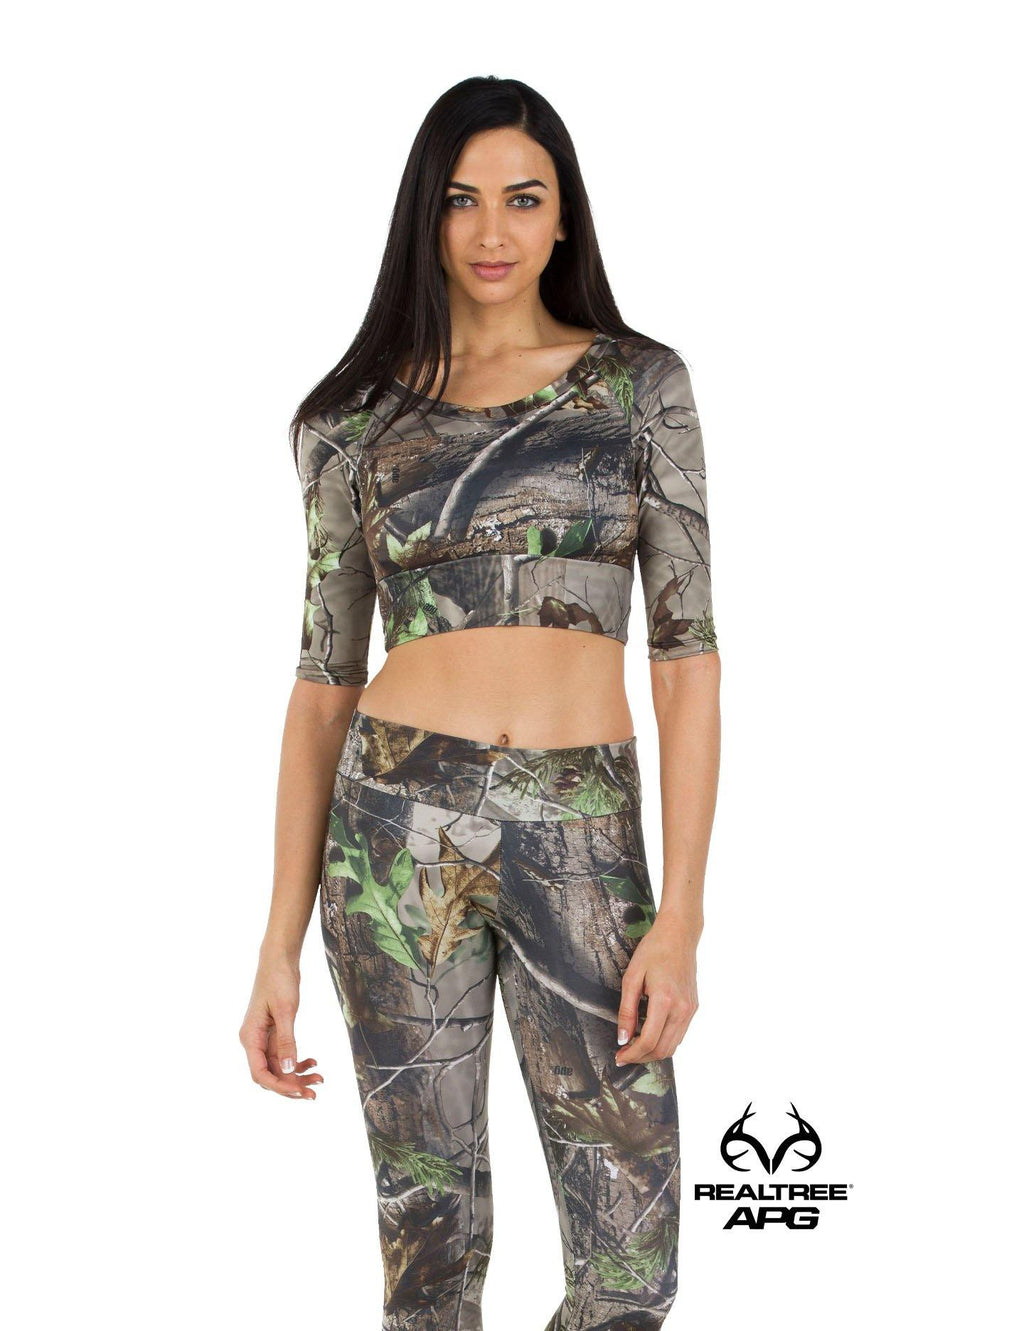 Apsara Cropped Top, Realtree APG